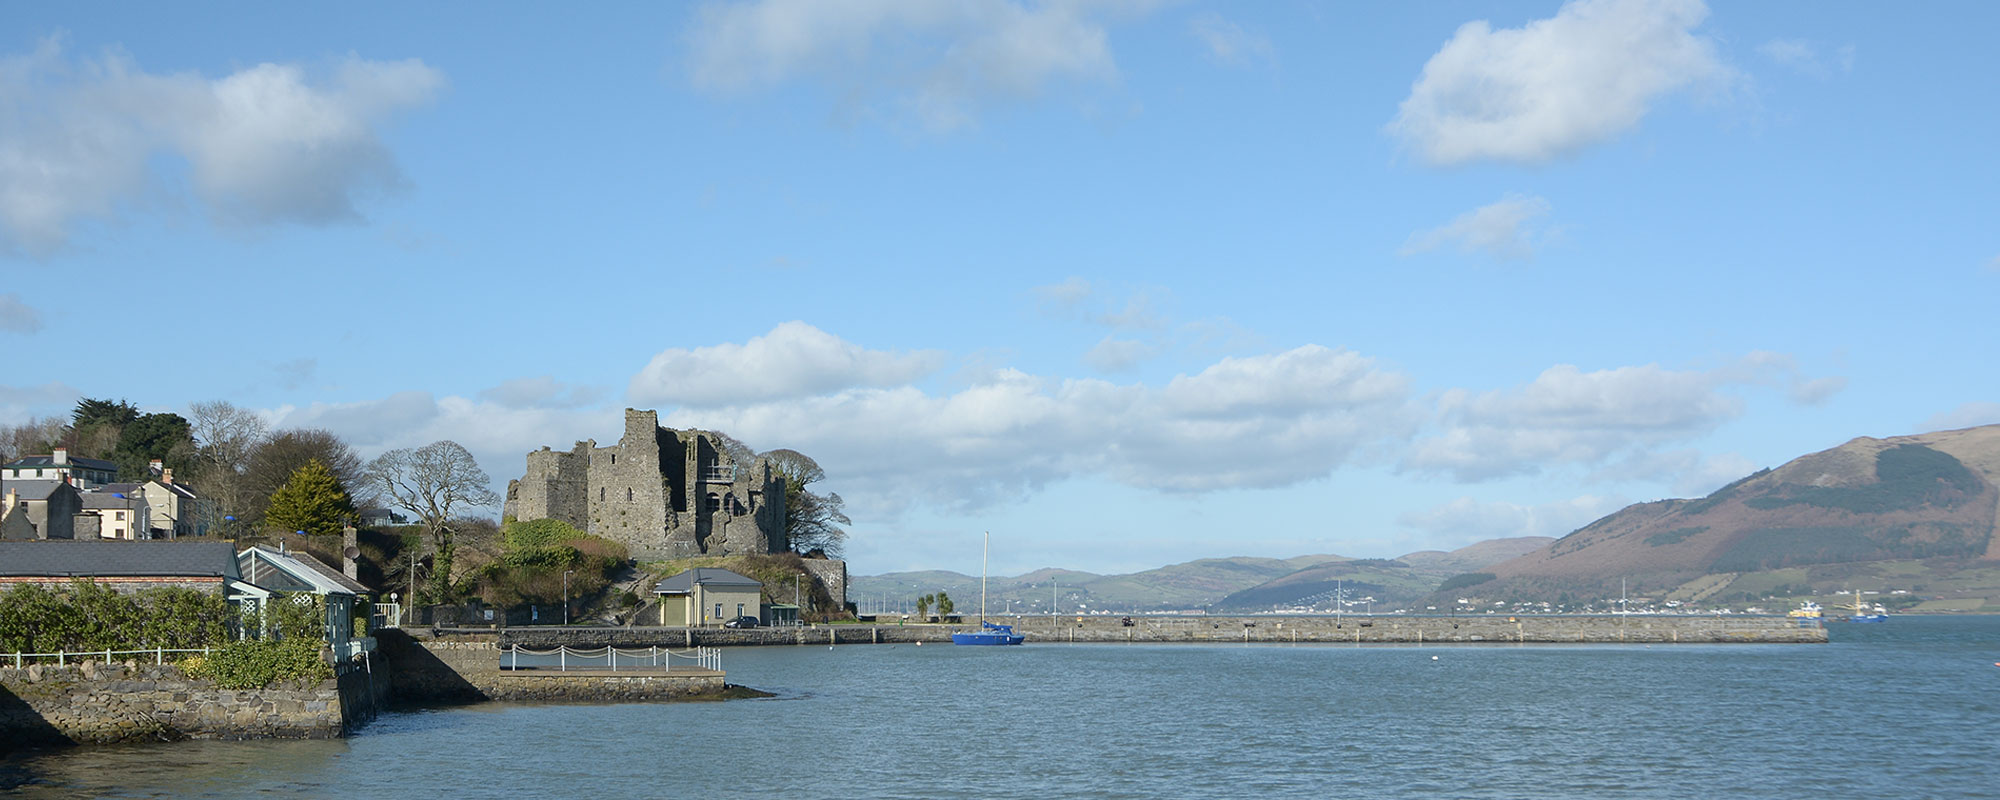 View of Self Catering Holiday Homes, Cottages and Luxury Apartments Carlingford